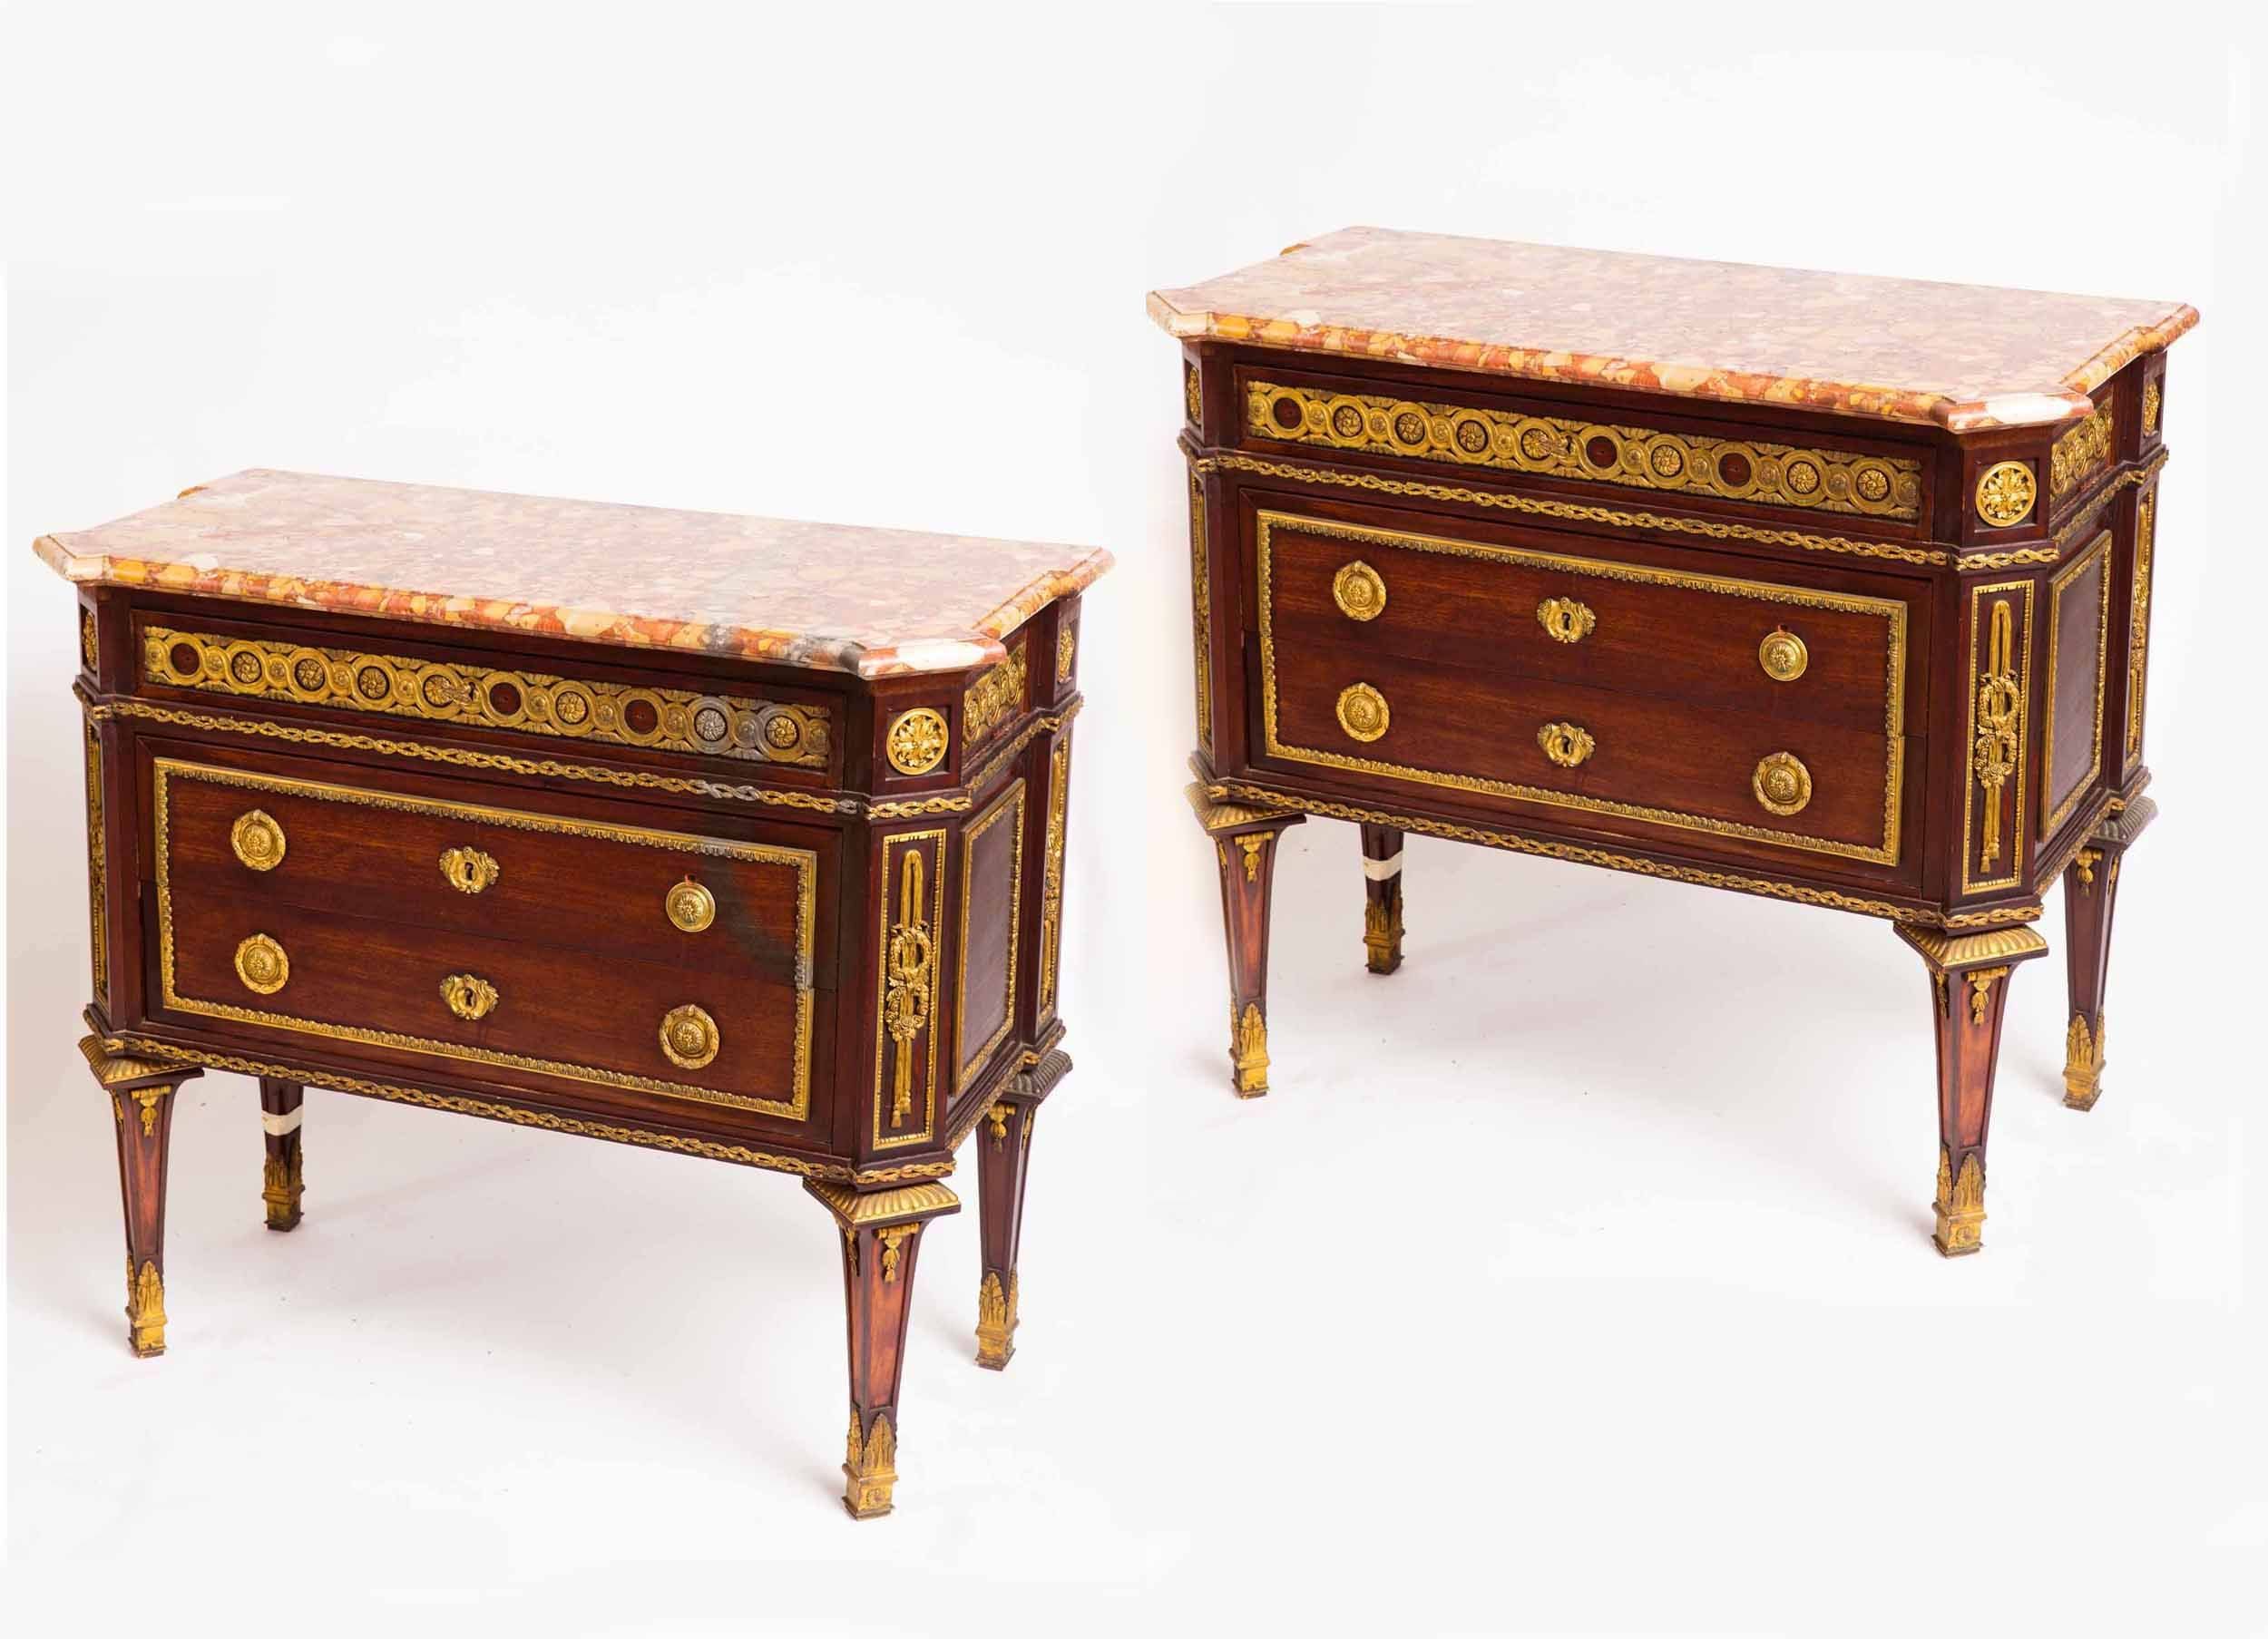 Team with contemporary artwork and lamps- Pair of 19th century French Louis XVI commodes.